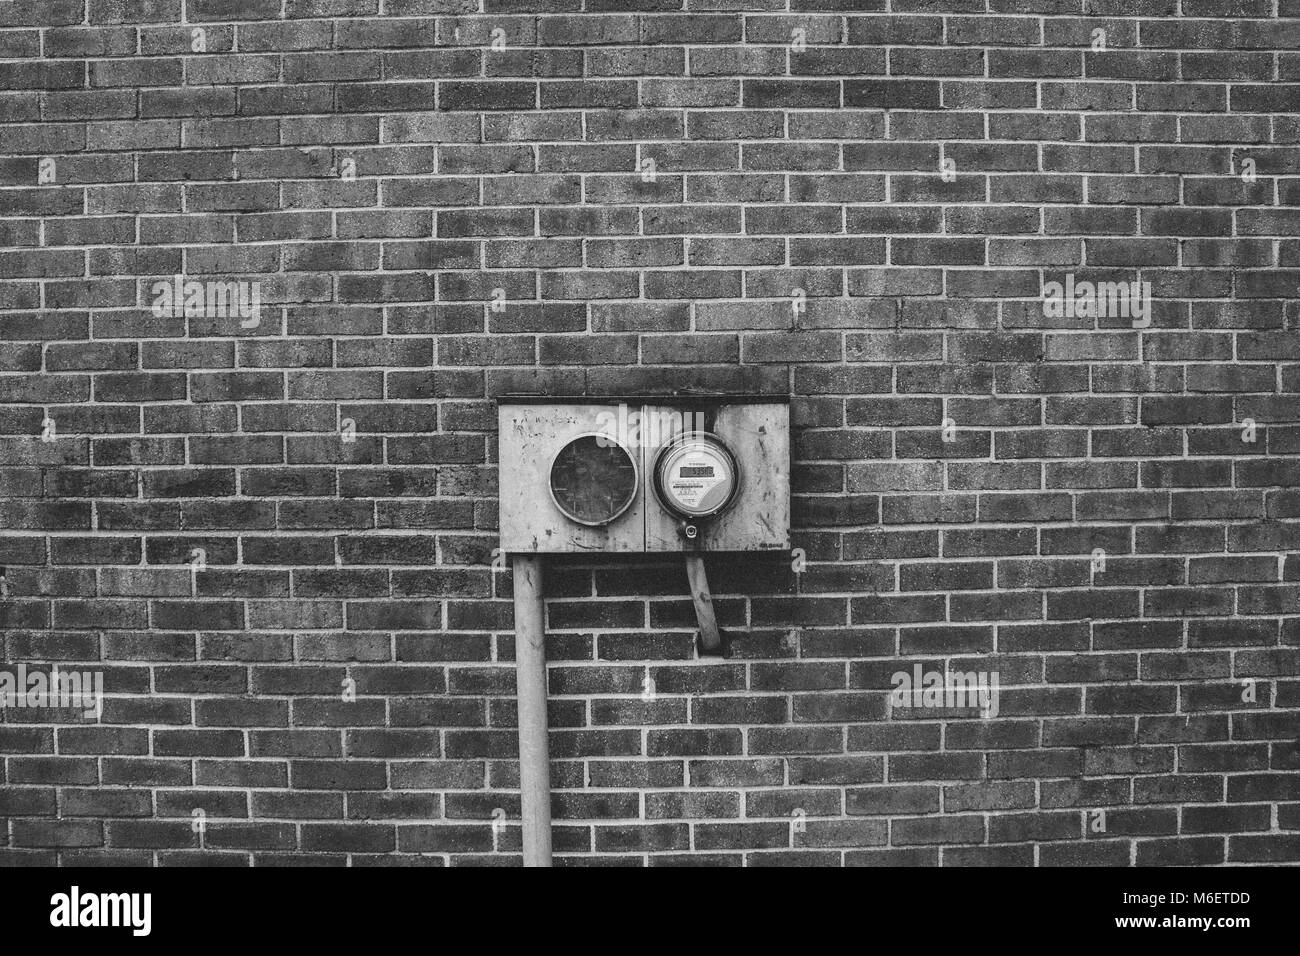 Energy Meter on a Brick Wall Exterior - Stock Image